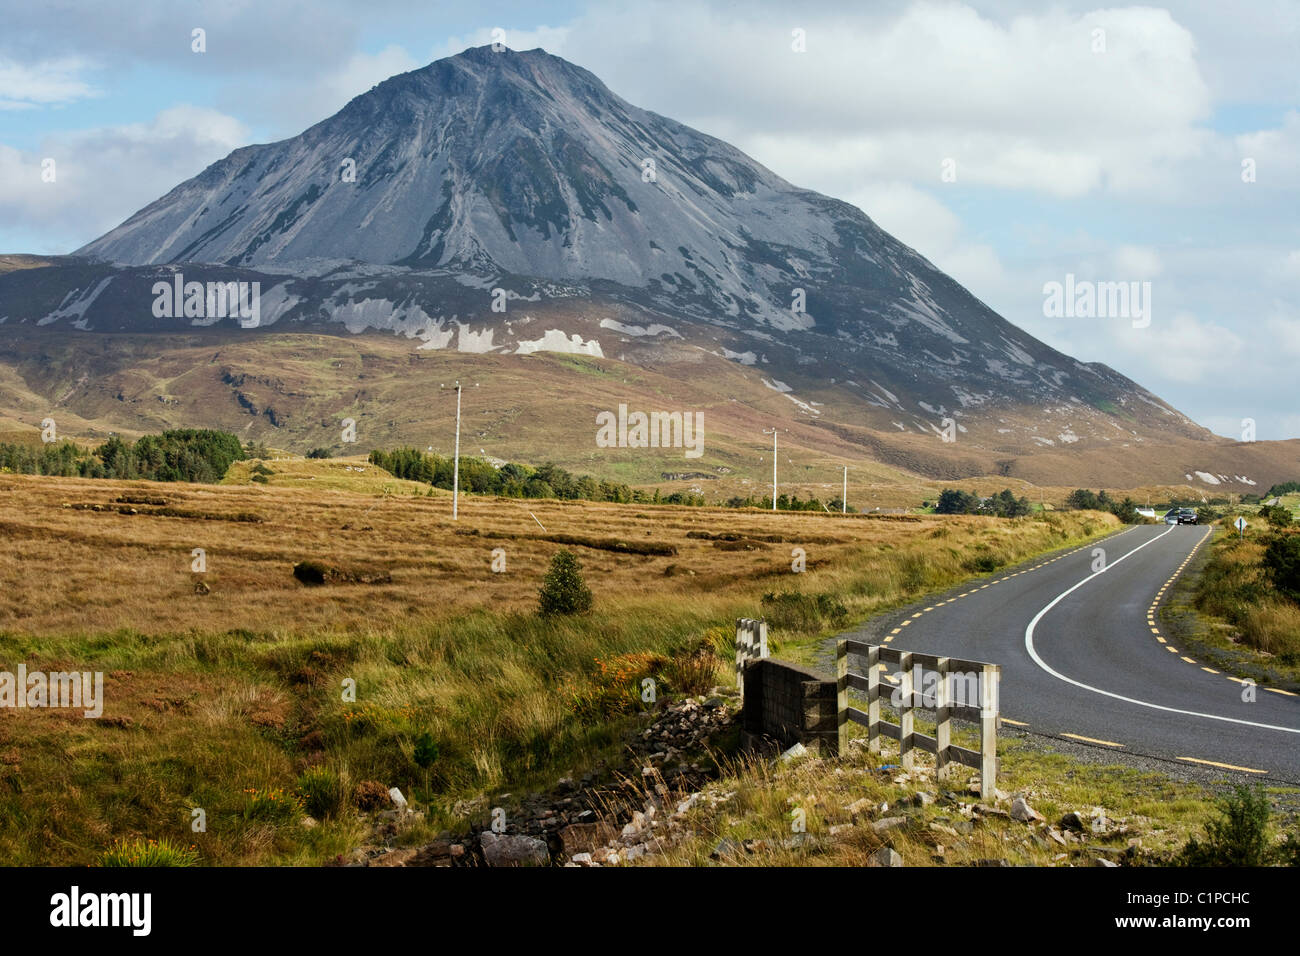 Republic of Ireland, County Donegal, Gweedore, Errigal Mountain - Stock Image